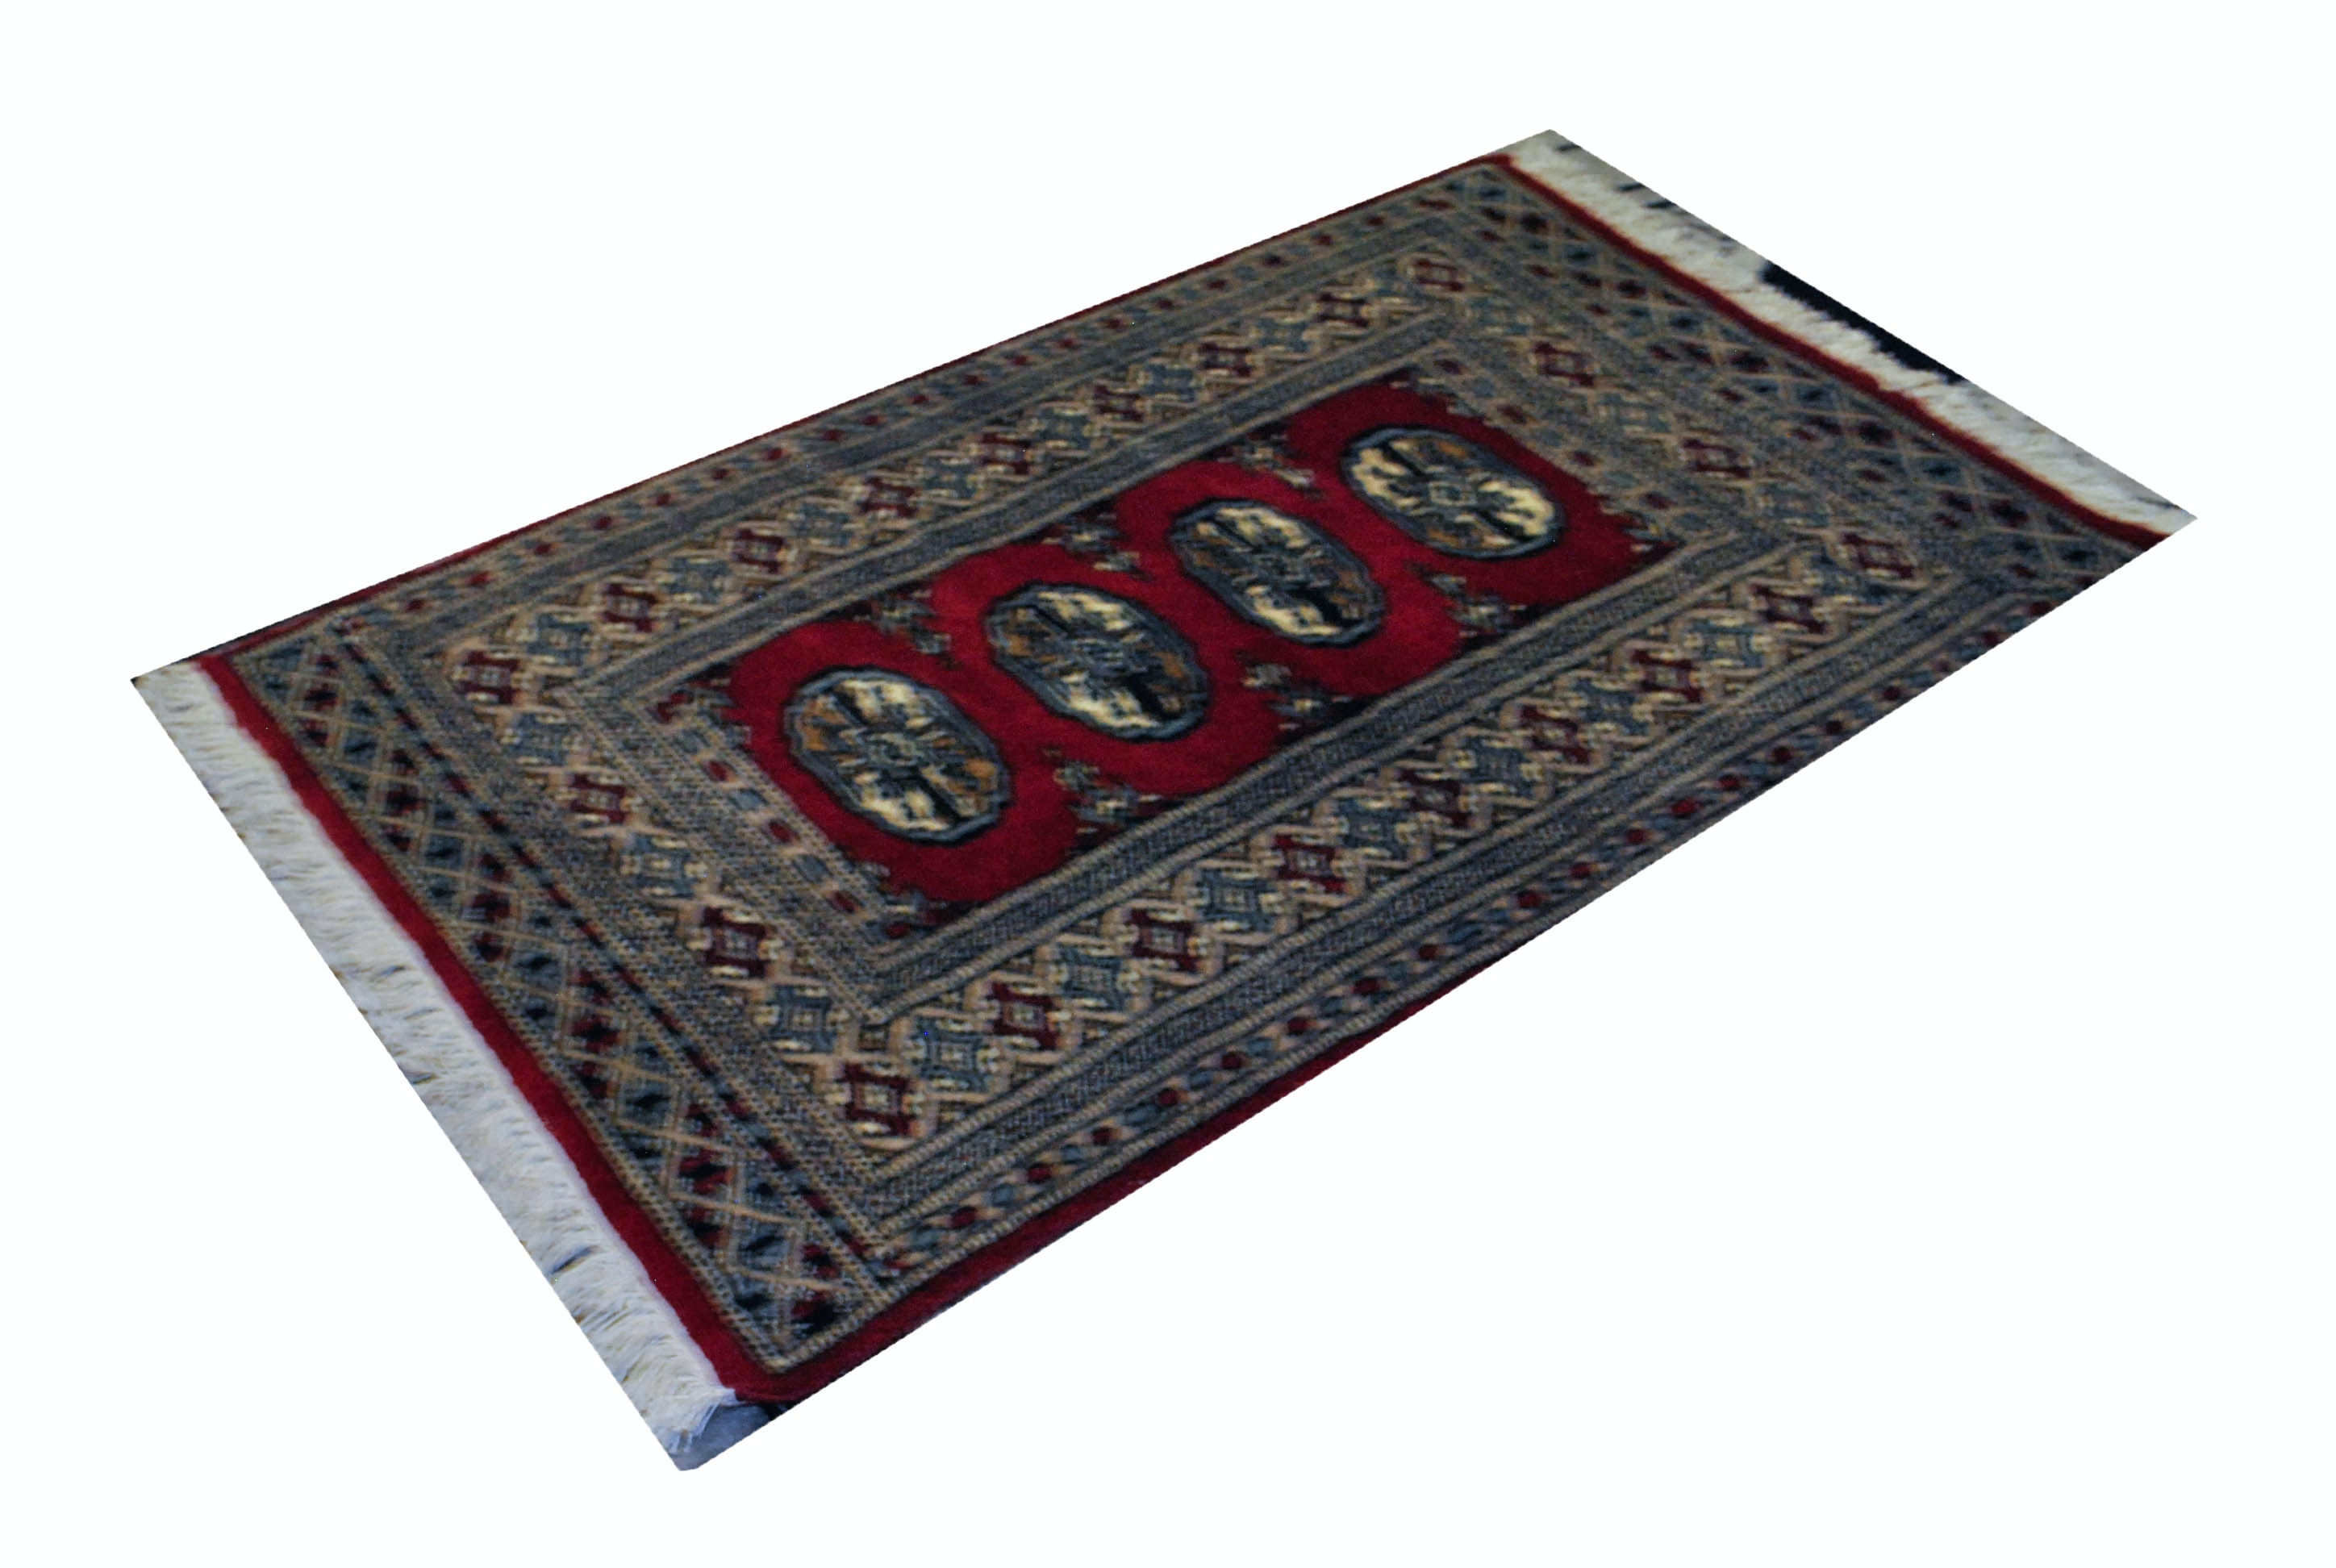 Bokhara Style Hand Woven Area Rug